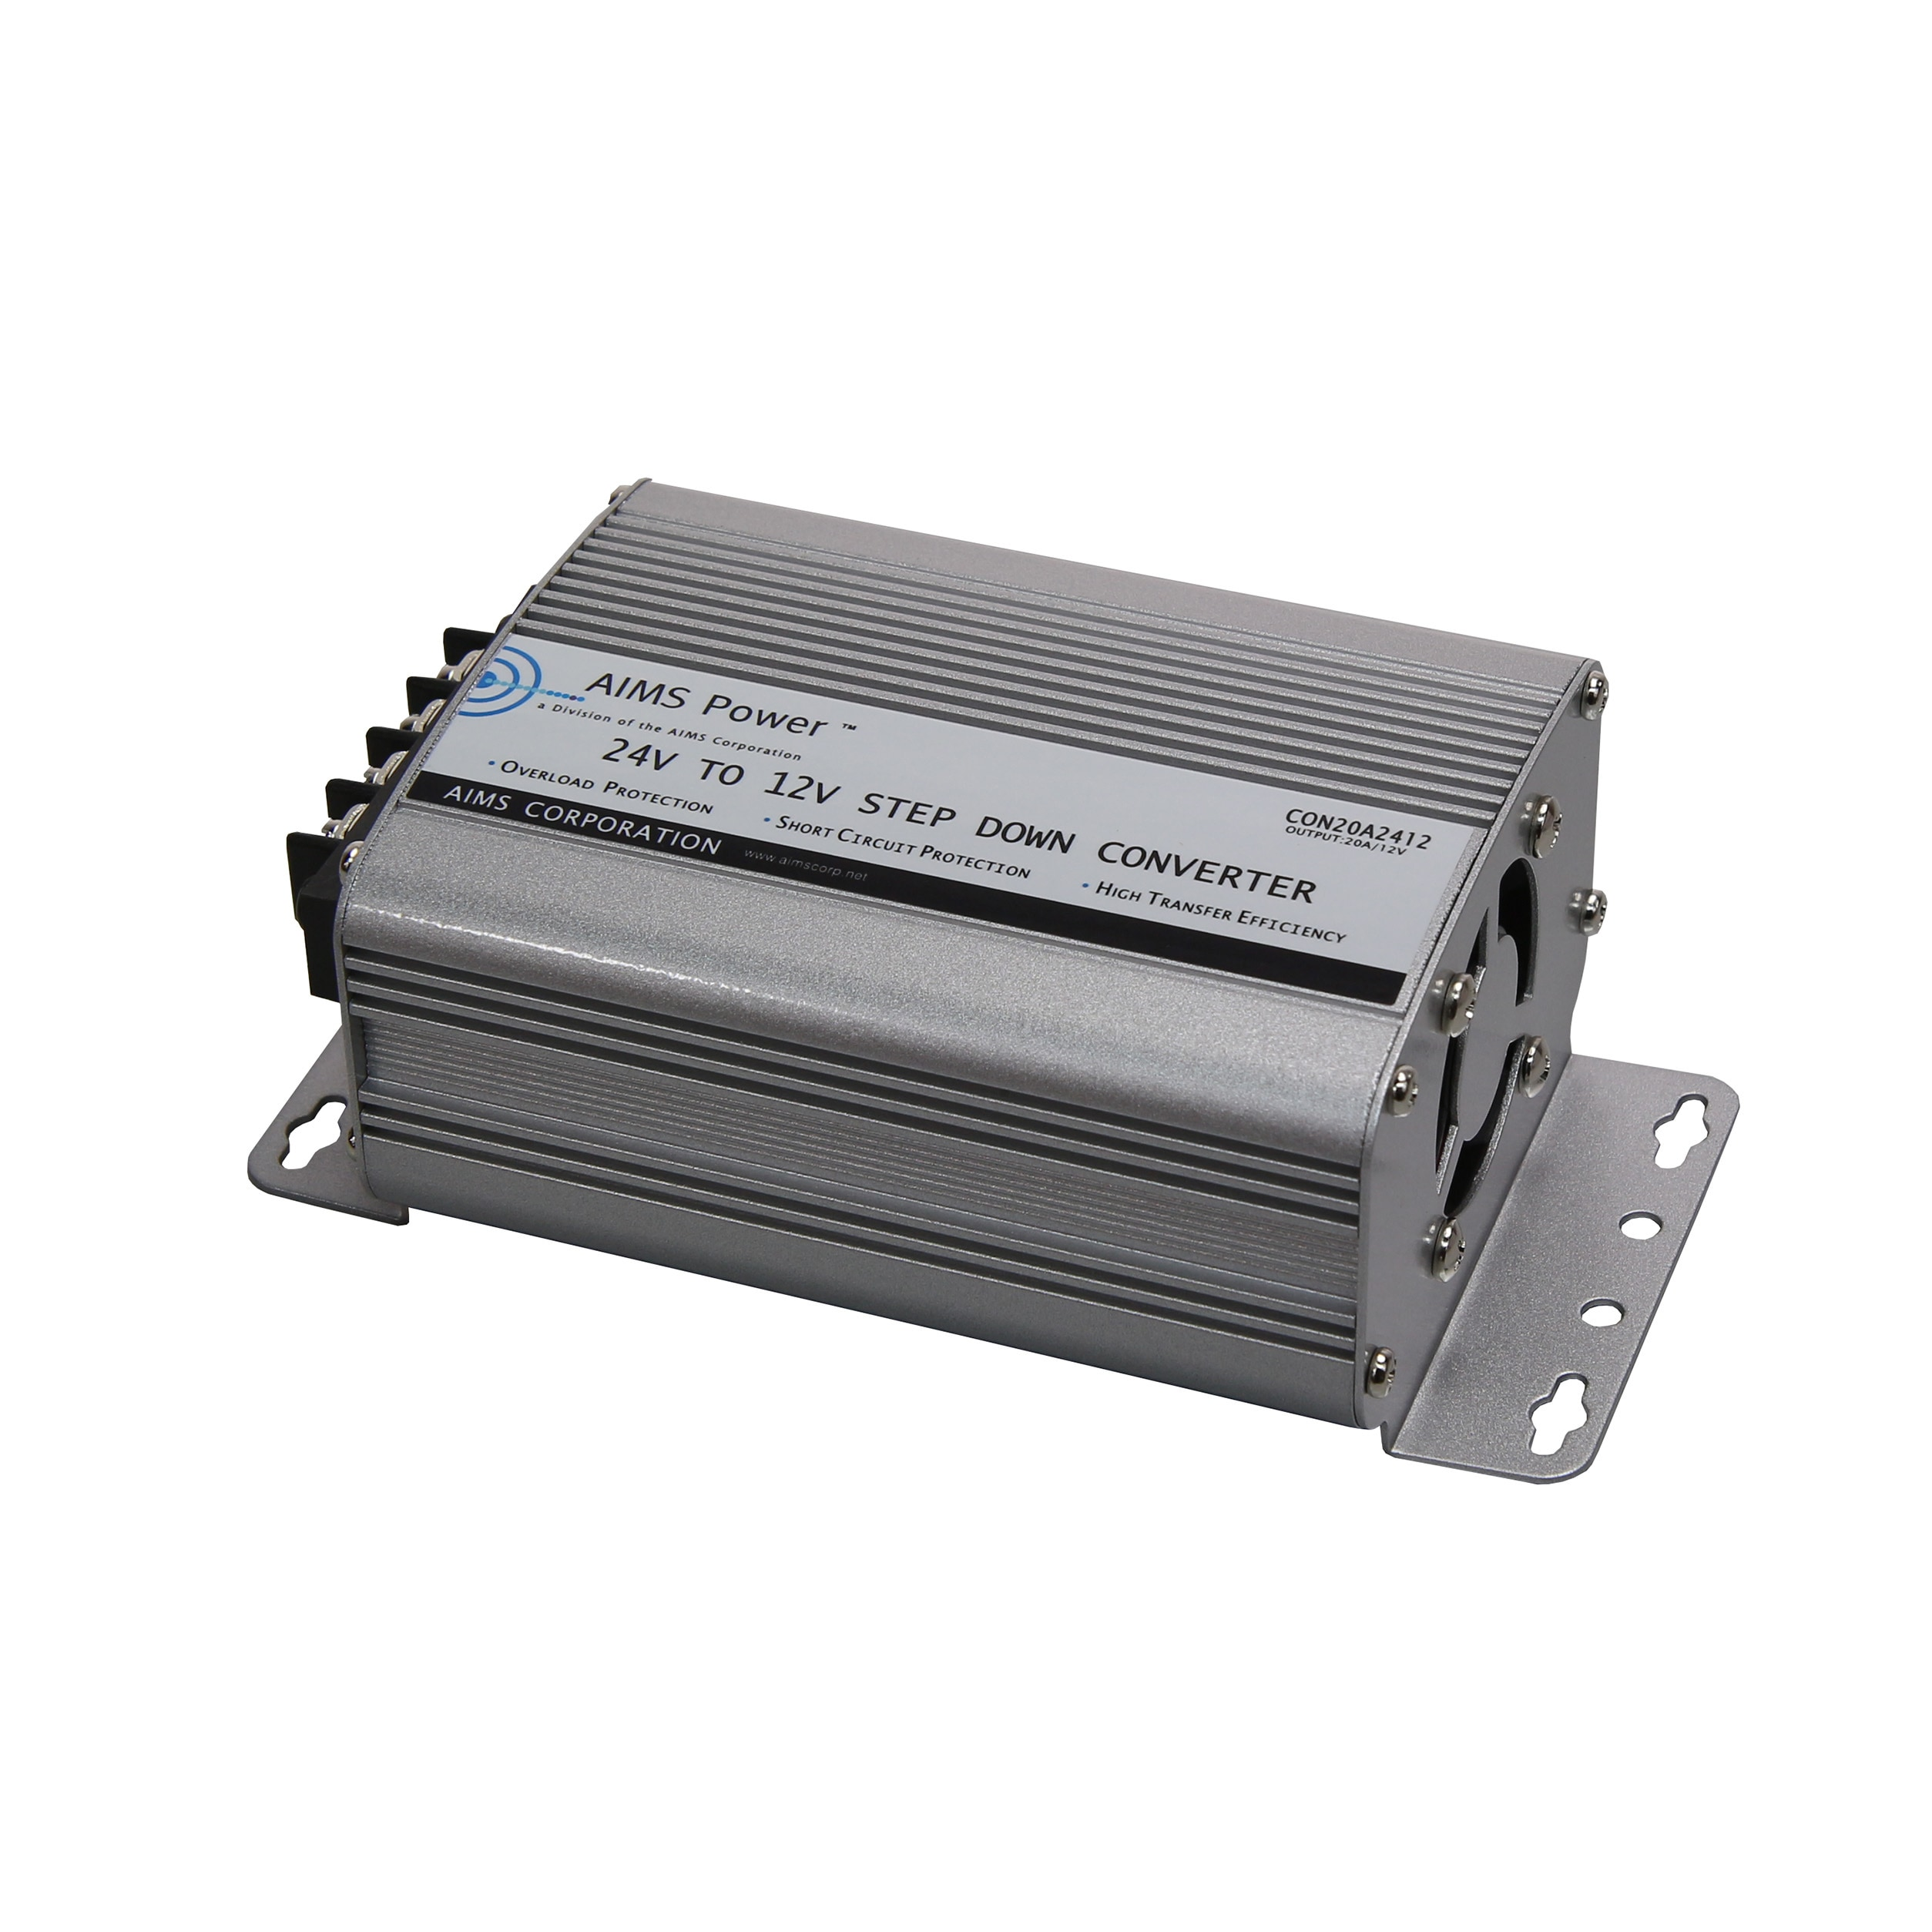 AIMS Power - DC to DC Converter / 24 to 12Vdc 151014631